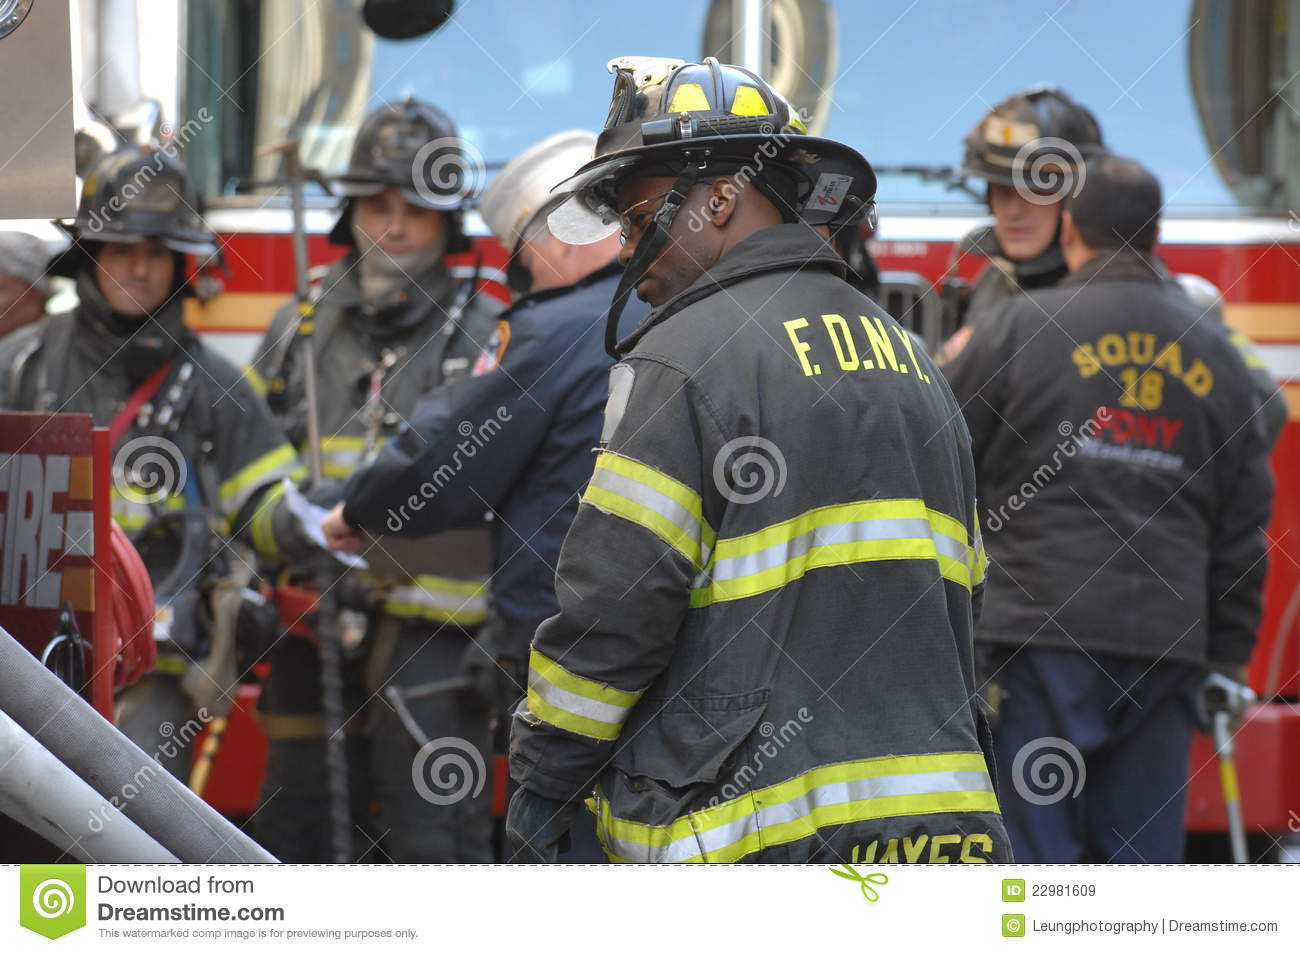 Fire Department NYC in Action